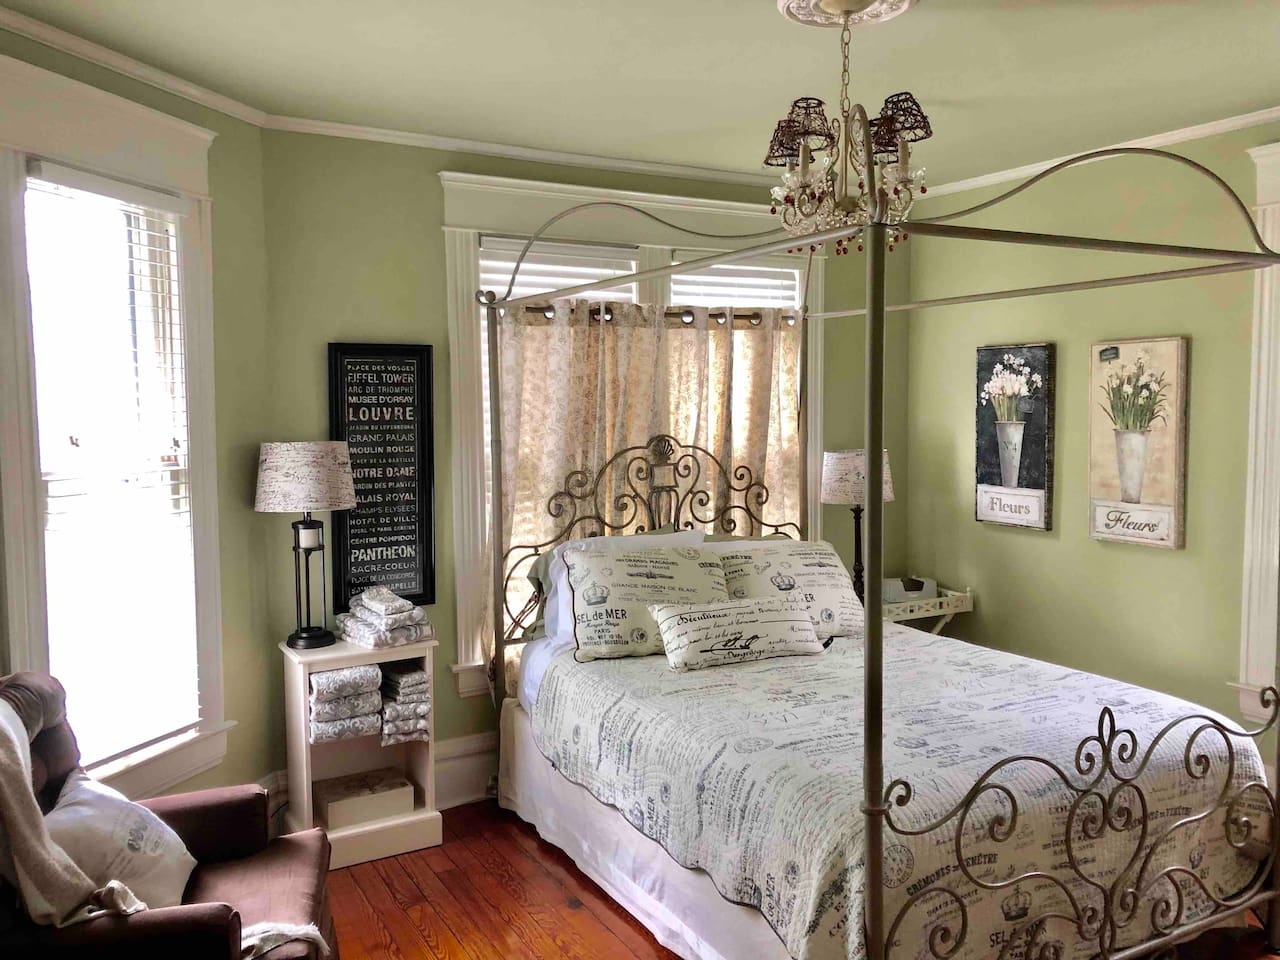 Enjoy the romantic Paris themed master bedroom with its comfortable queen size bed.  The room combines dramatic elements, like the canopy and chandelier, with tranquil, soothing colors and designs.